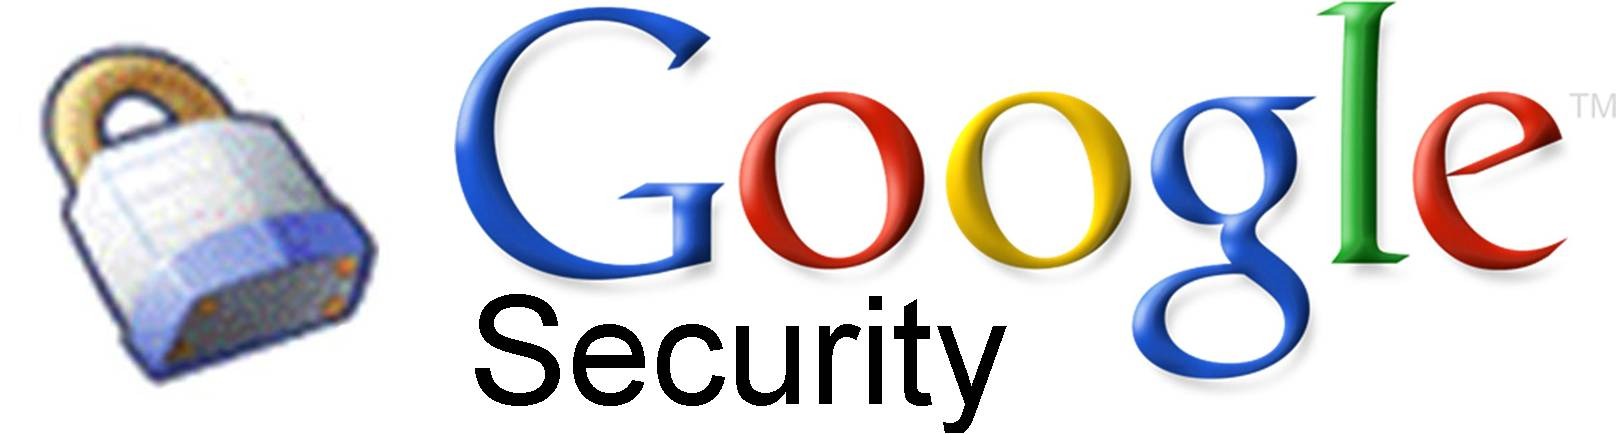 Photo of Google se opune reformei de securitate cibernetica